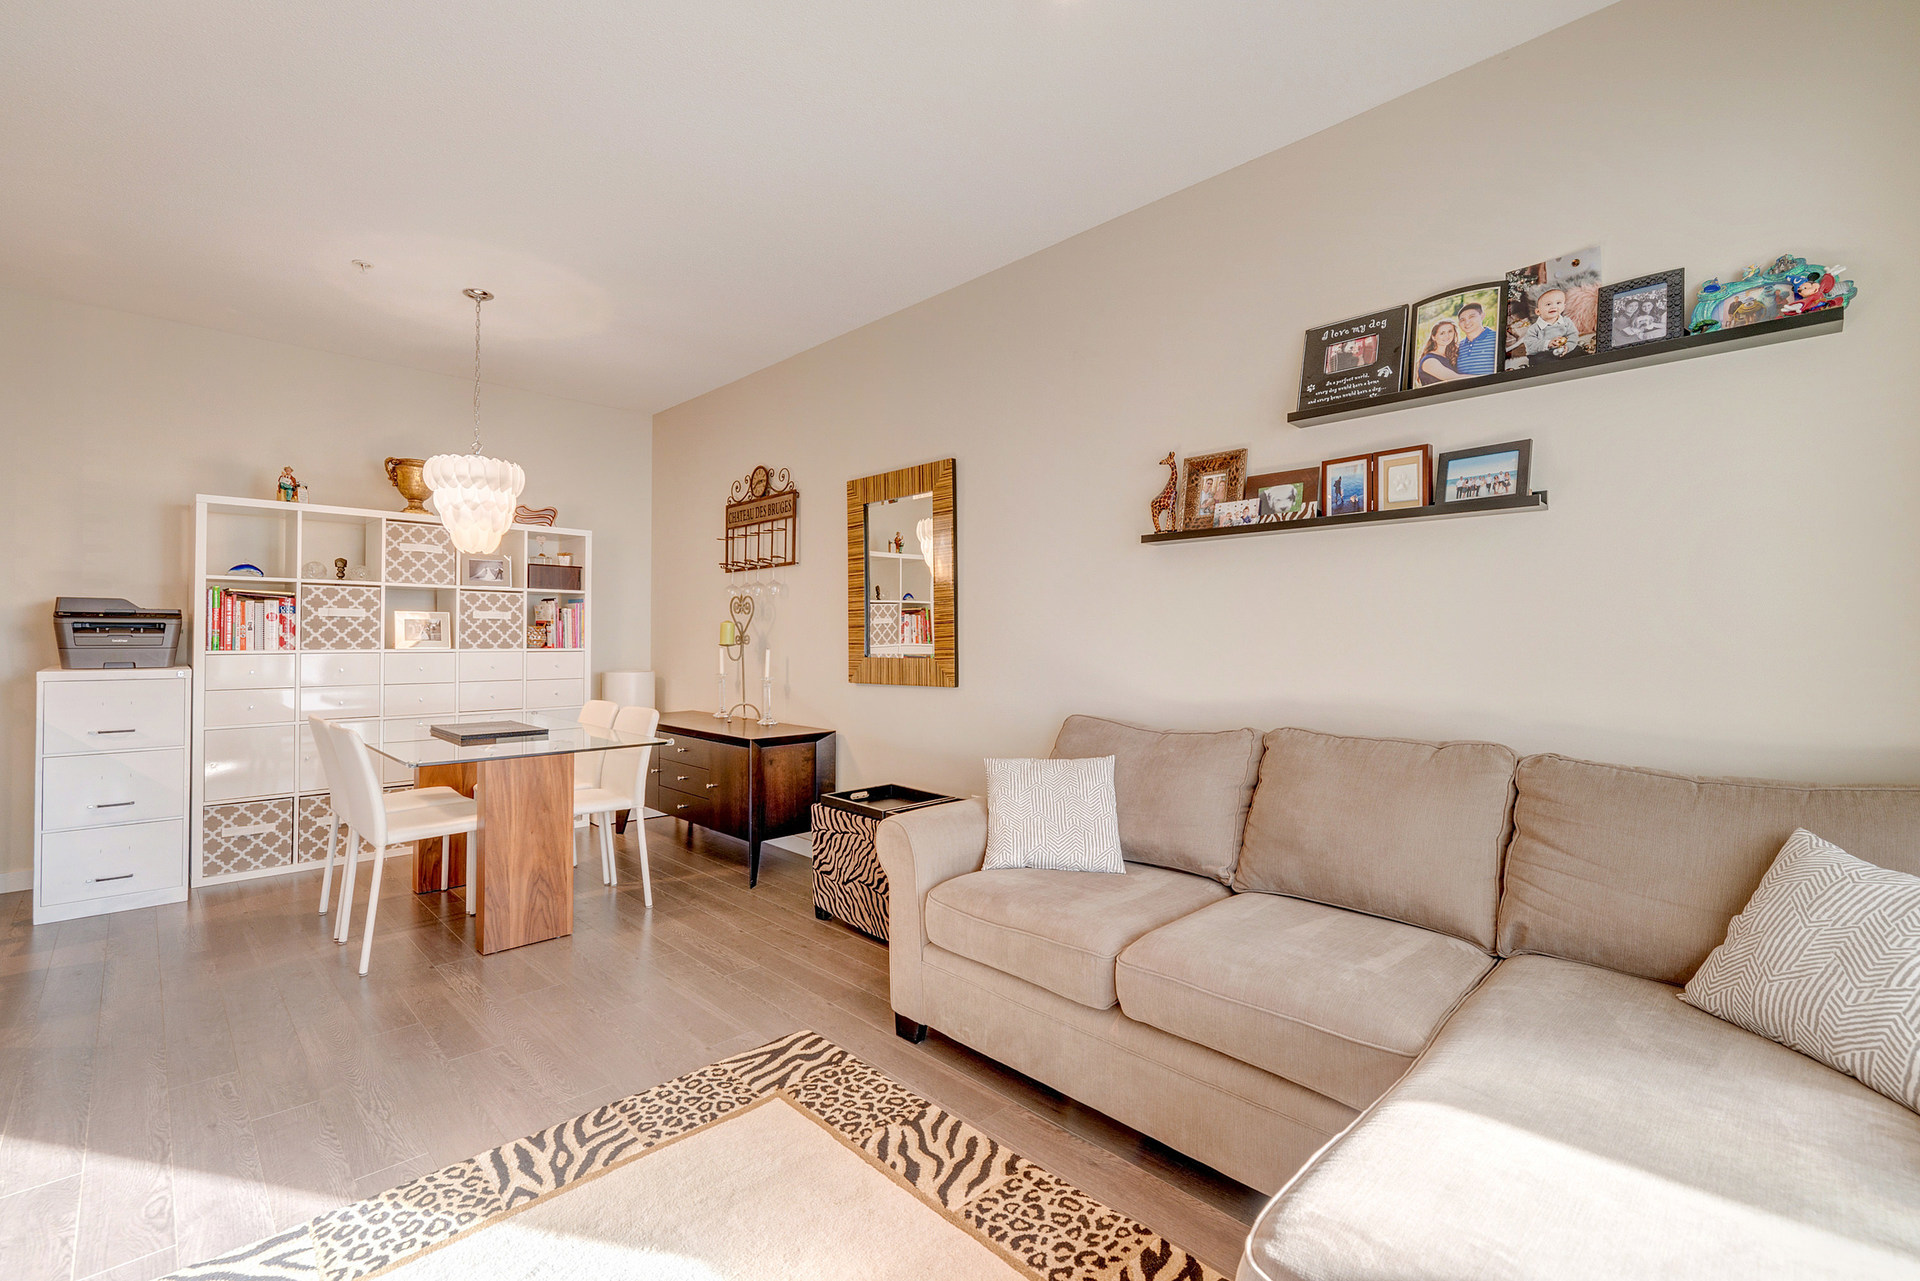 Living Room & Kitchen at 337 - 9388 Mckim Way, West Cambie, Richmond